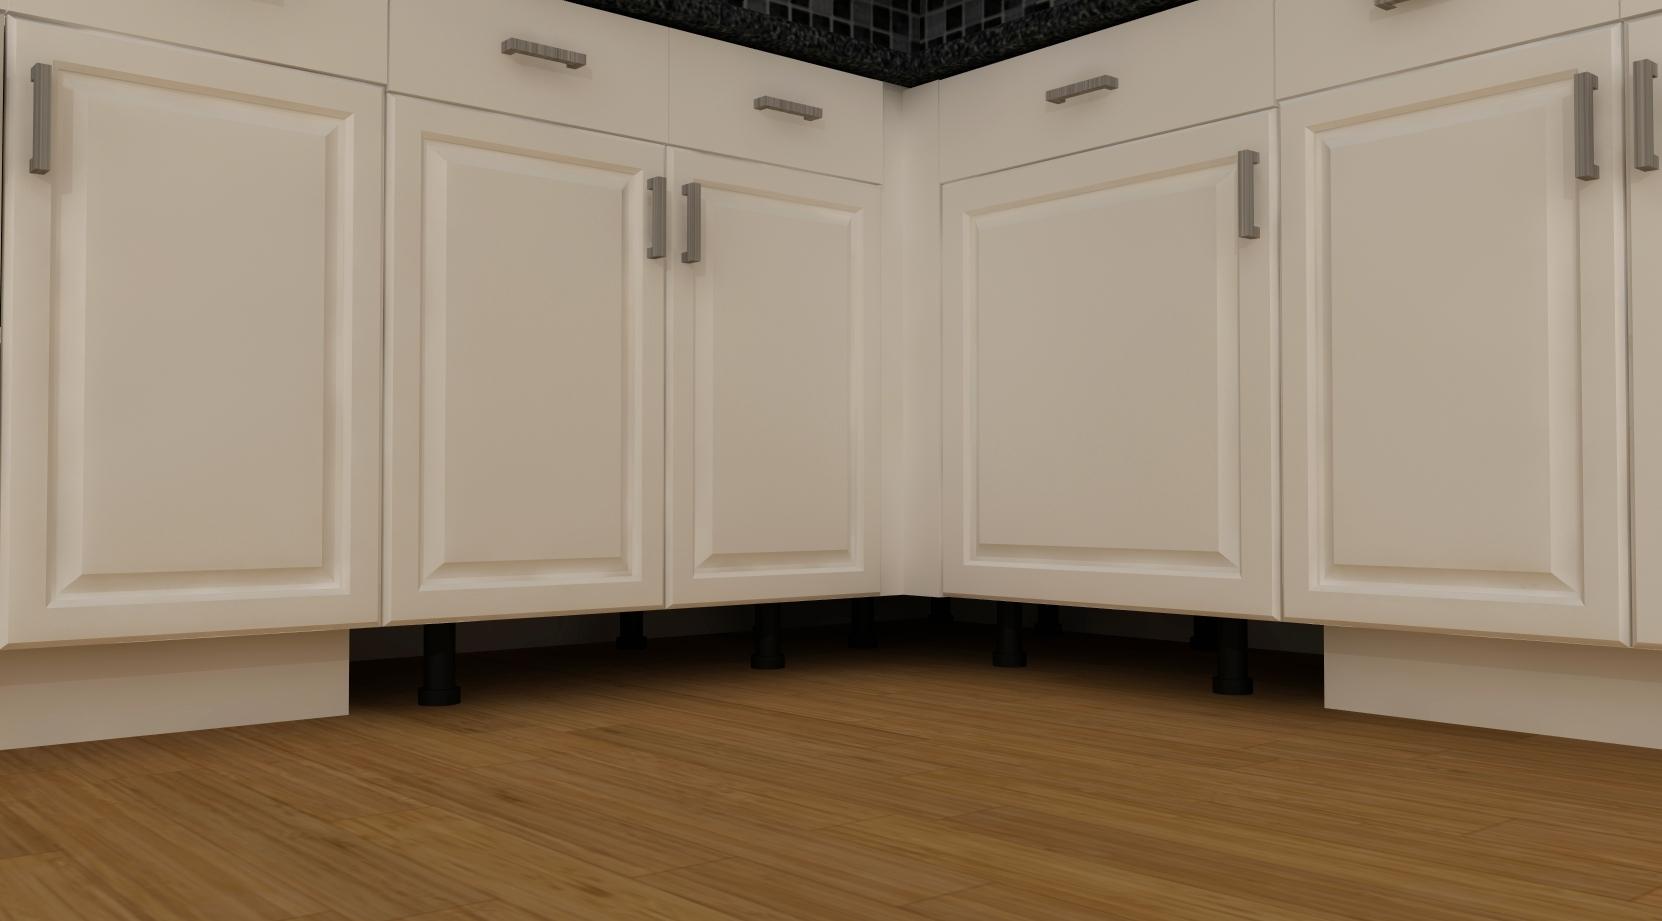 good How To Install Toe Kicks On Kitchen Cabinets #2: Inspired Kitchen Design